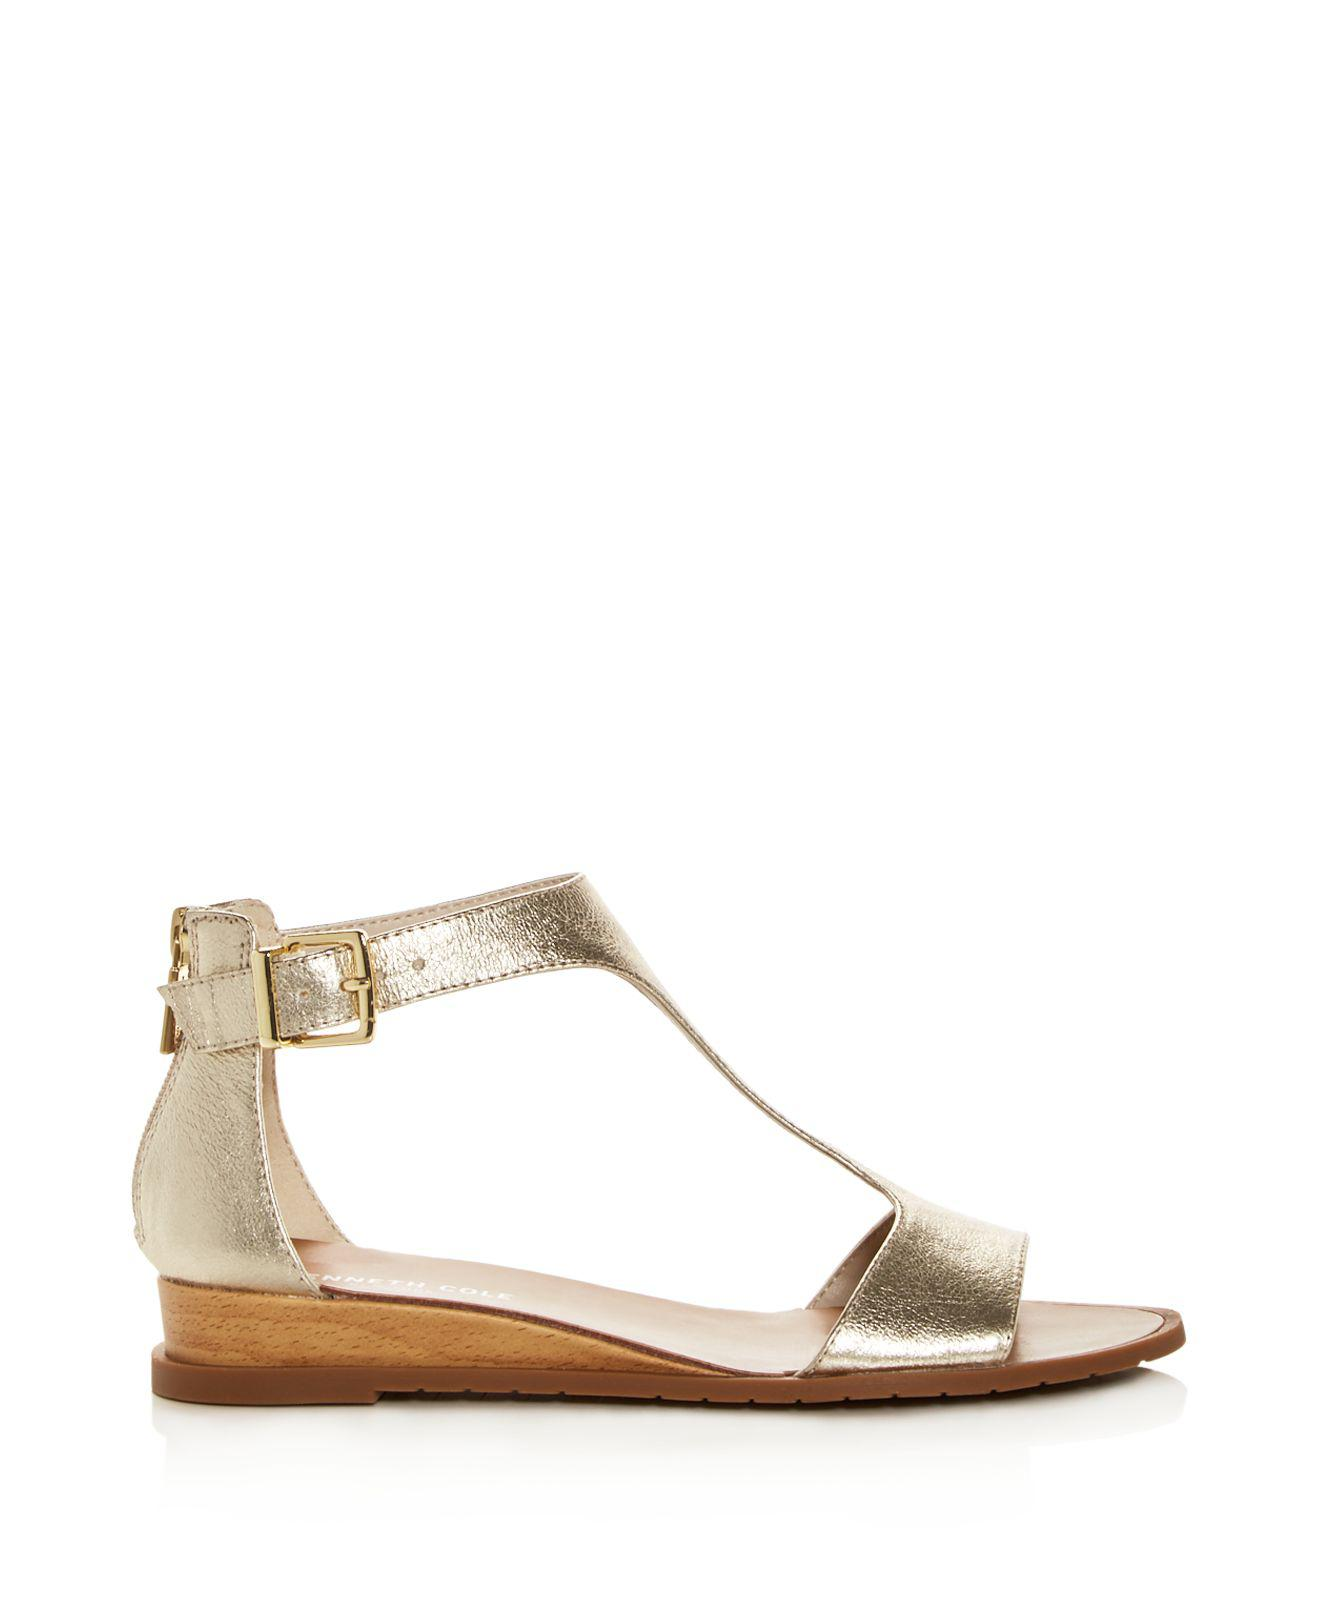 Kenneth Cole Women's Judd Leather T-Strap Demi Wedge Sandals aaGLfPdrH